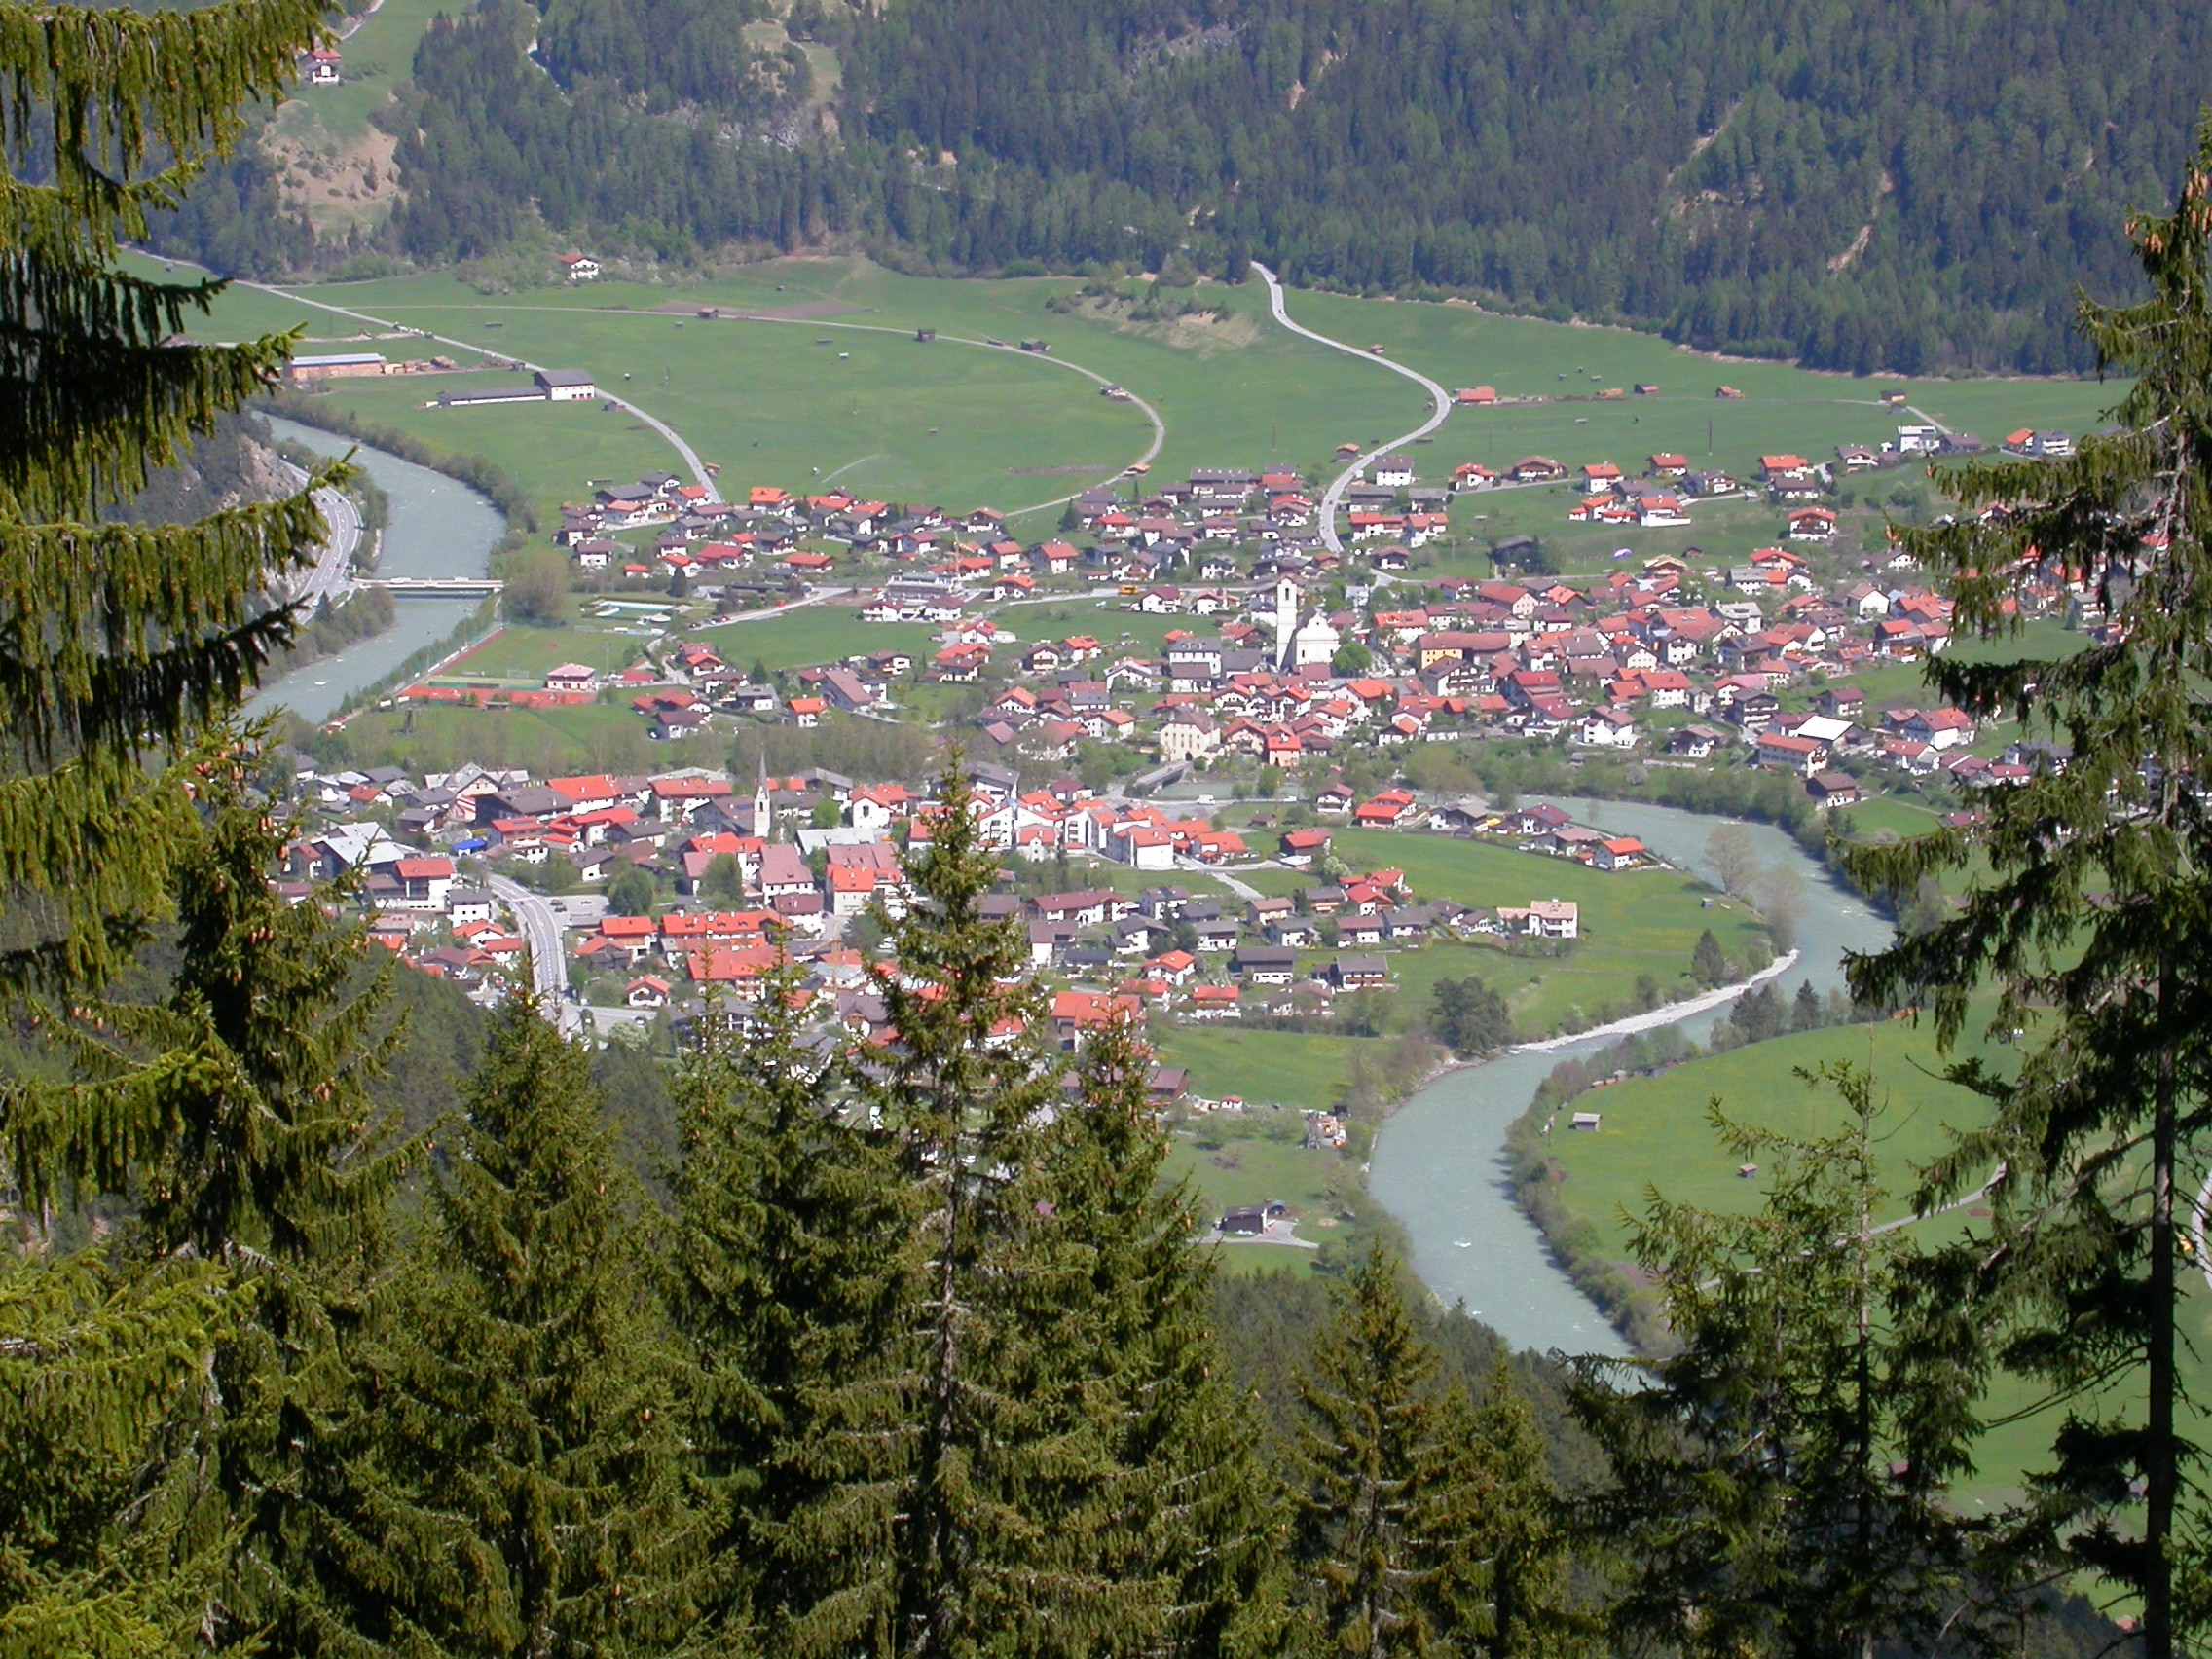 paul nature landscapes valley village alps trees ferntrees fern ferns houses city green river